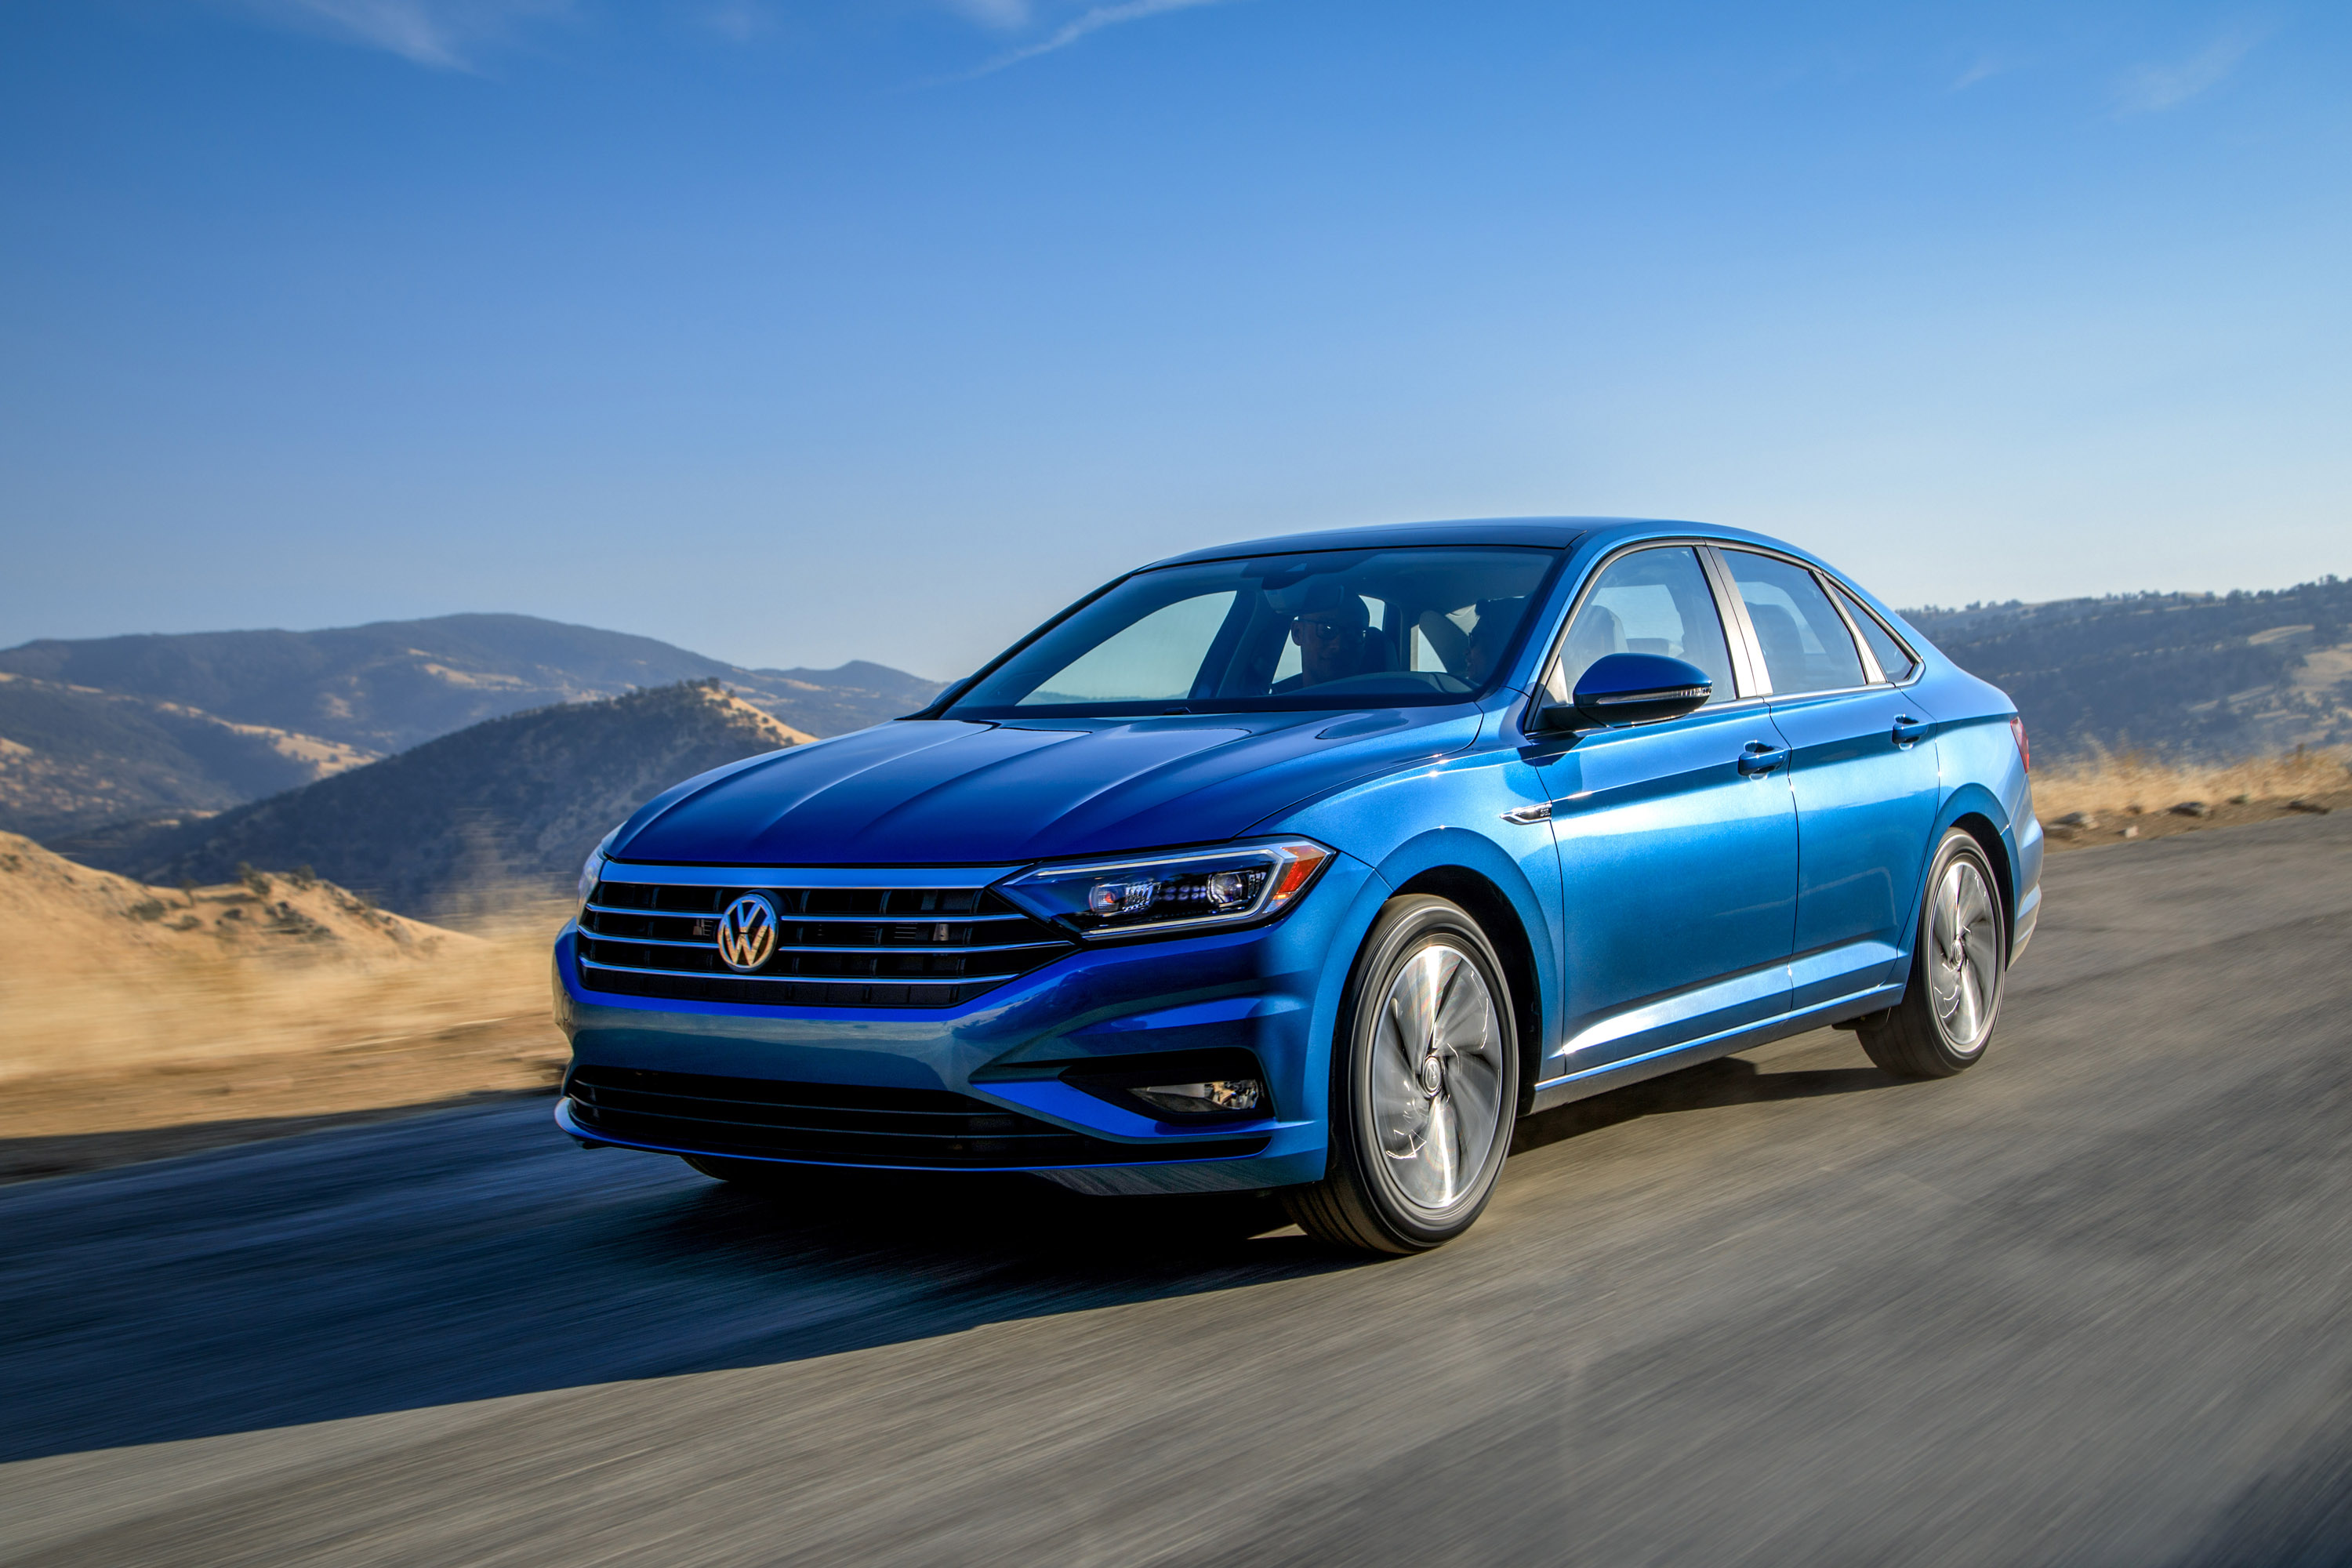 Volkswagen presents 2018 Jetta